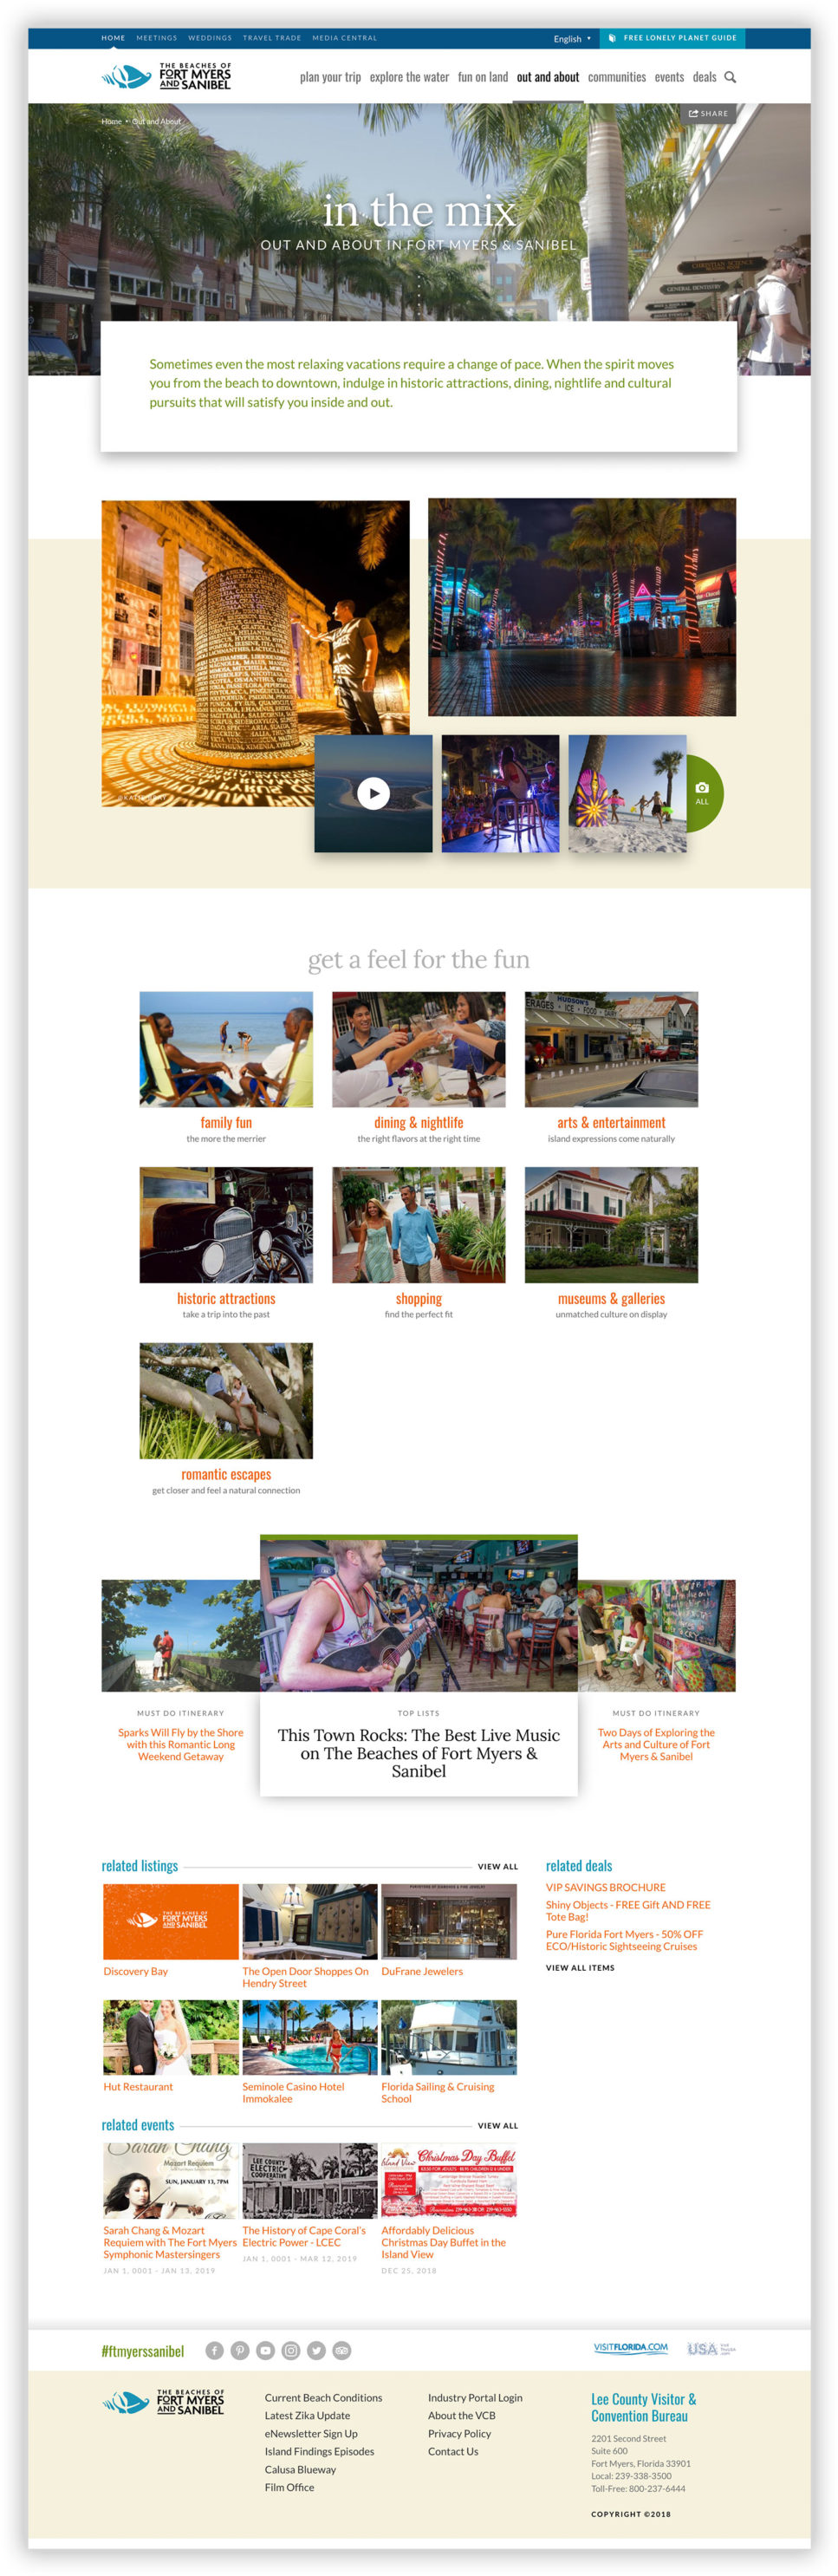 The Fort Myers/Sanibel neighborhood detail page